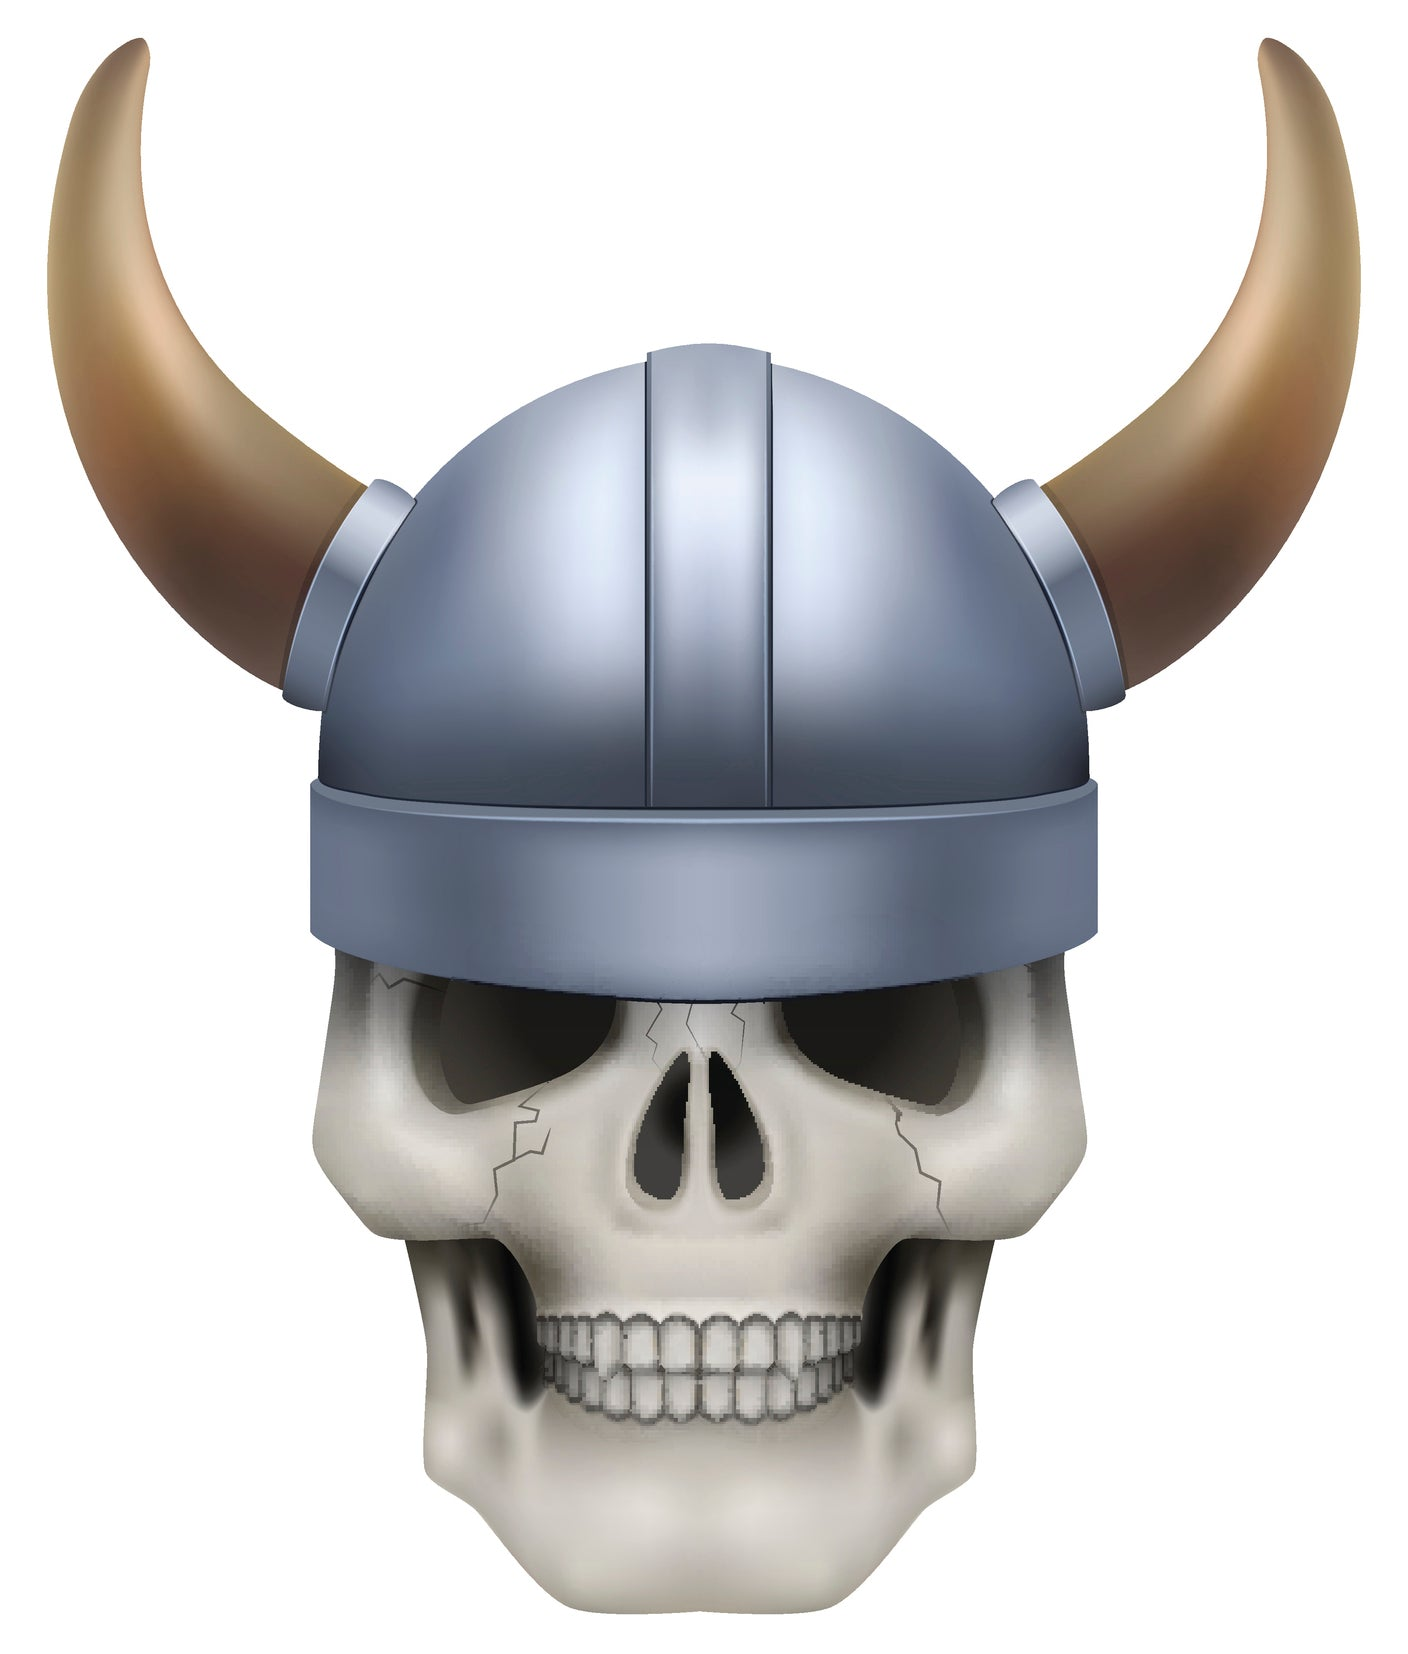 Skeleton Skull Head Icon - Viking Helmet Vinyl Decal Sticker